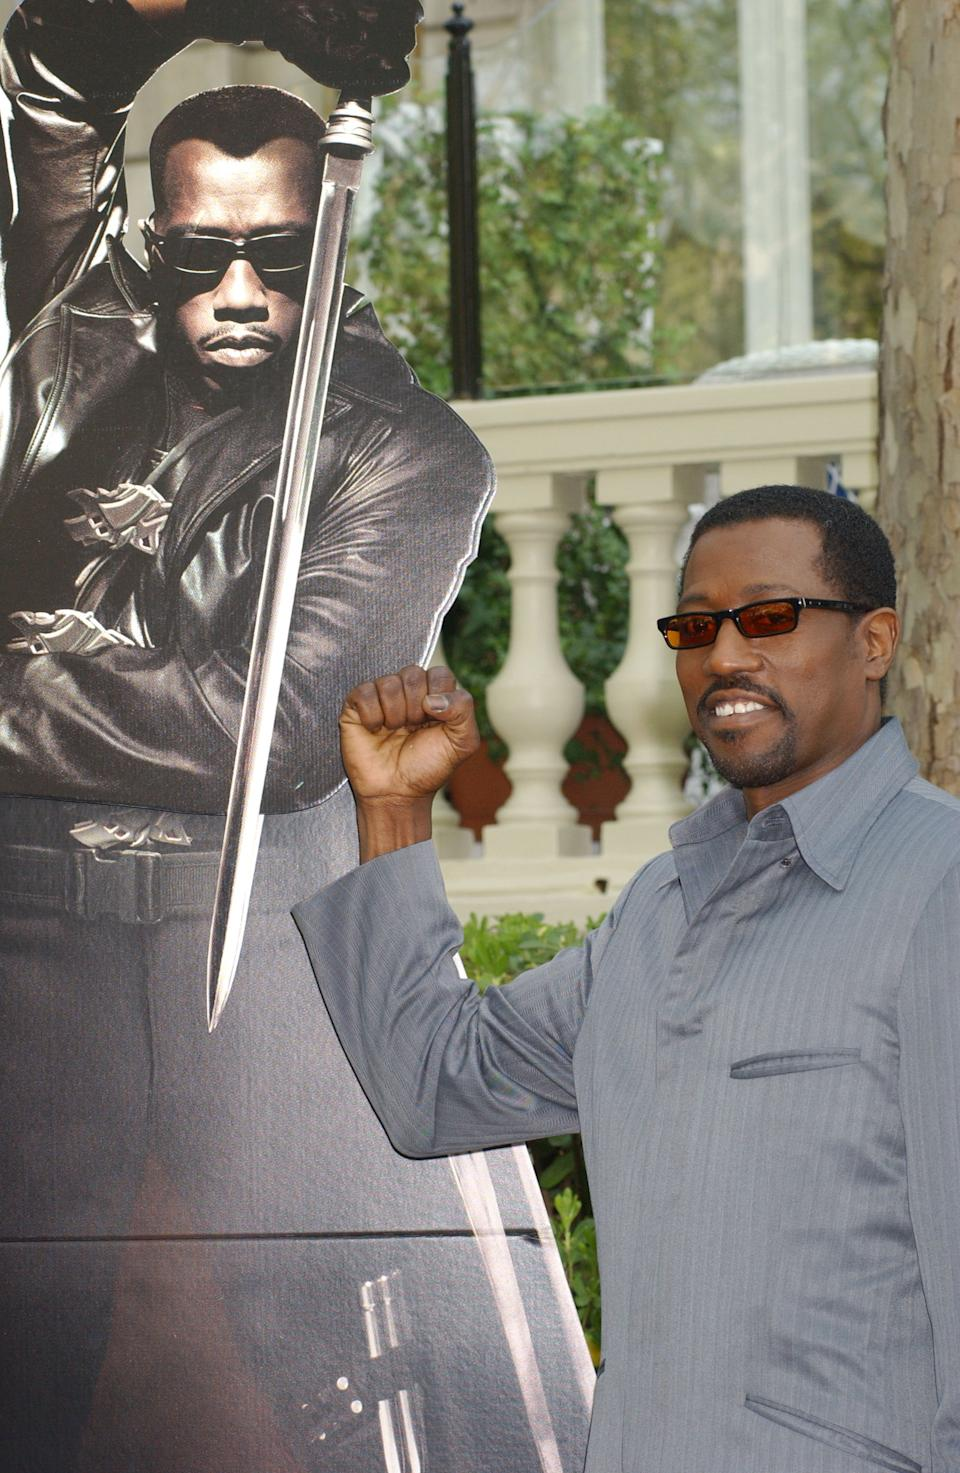 404056 04: Actor Wesley Snipes poses for photographers while promoting his new movie